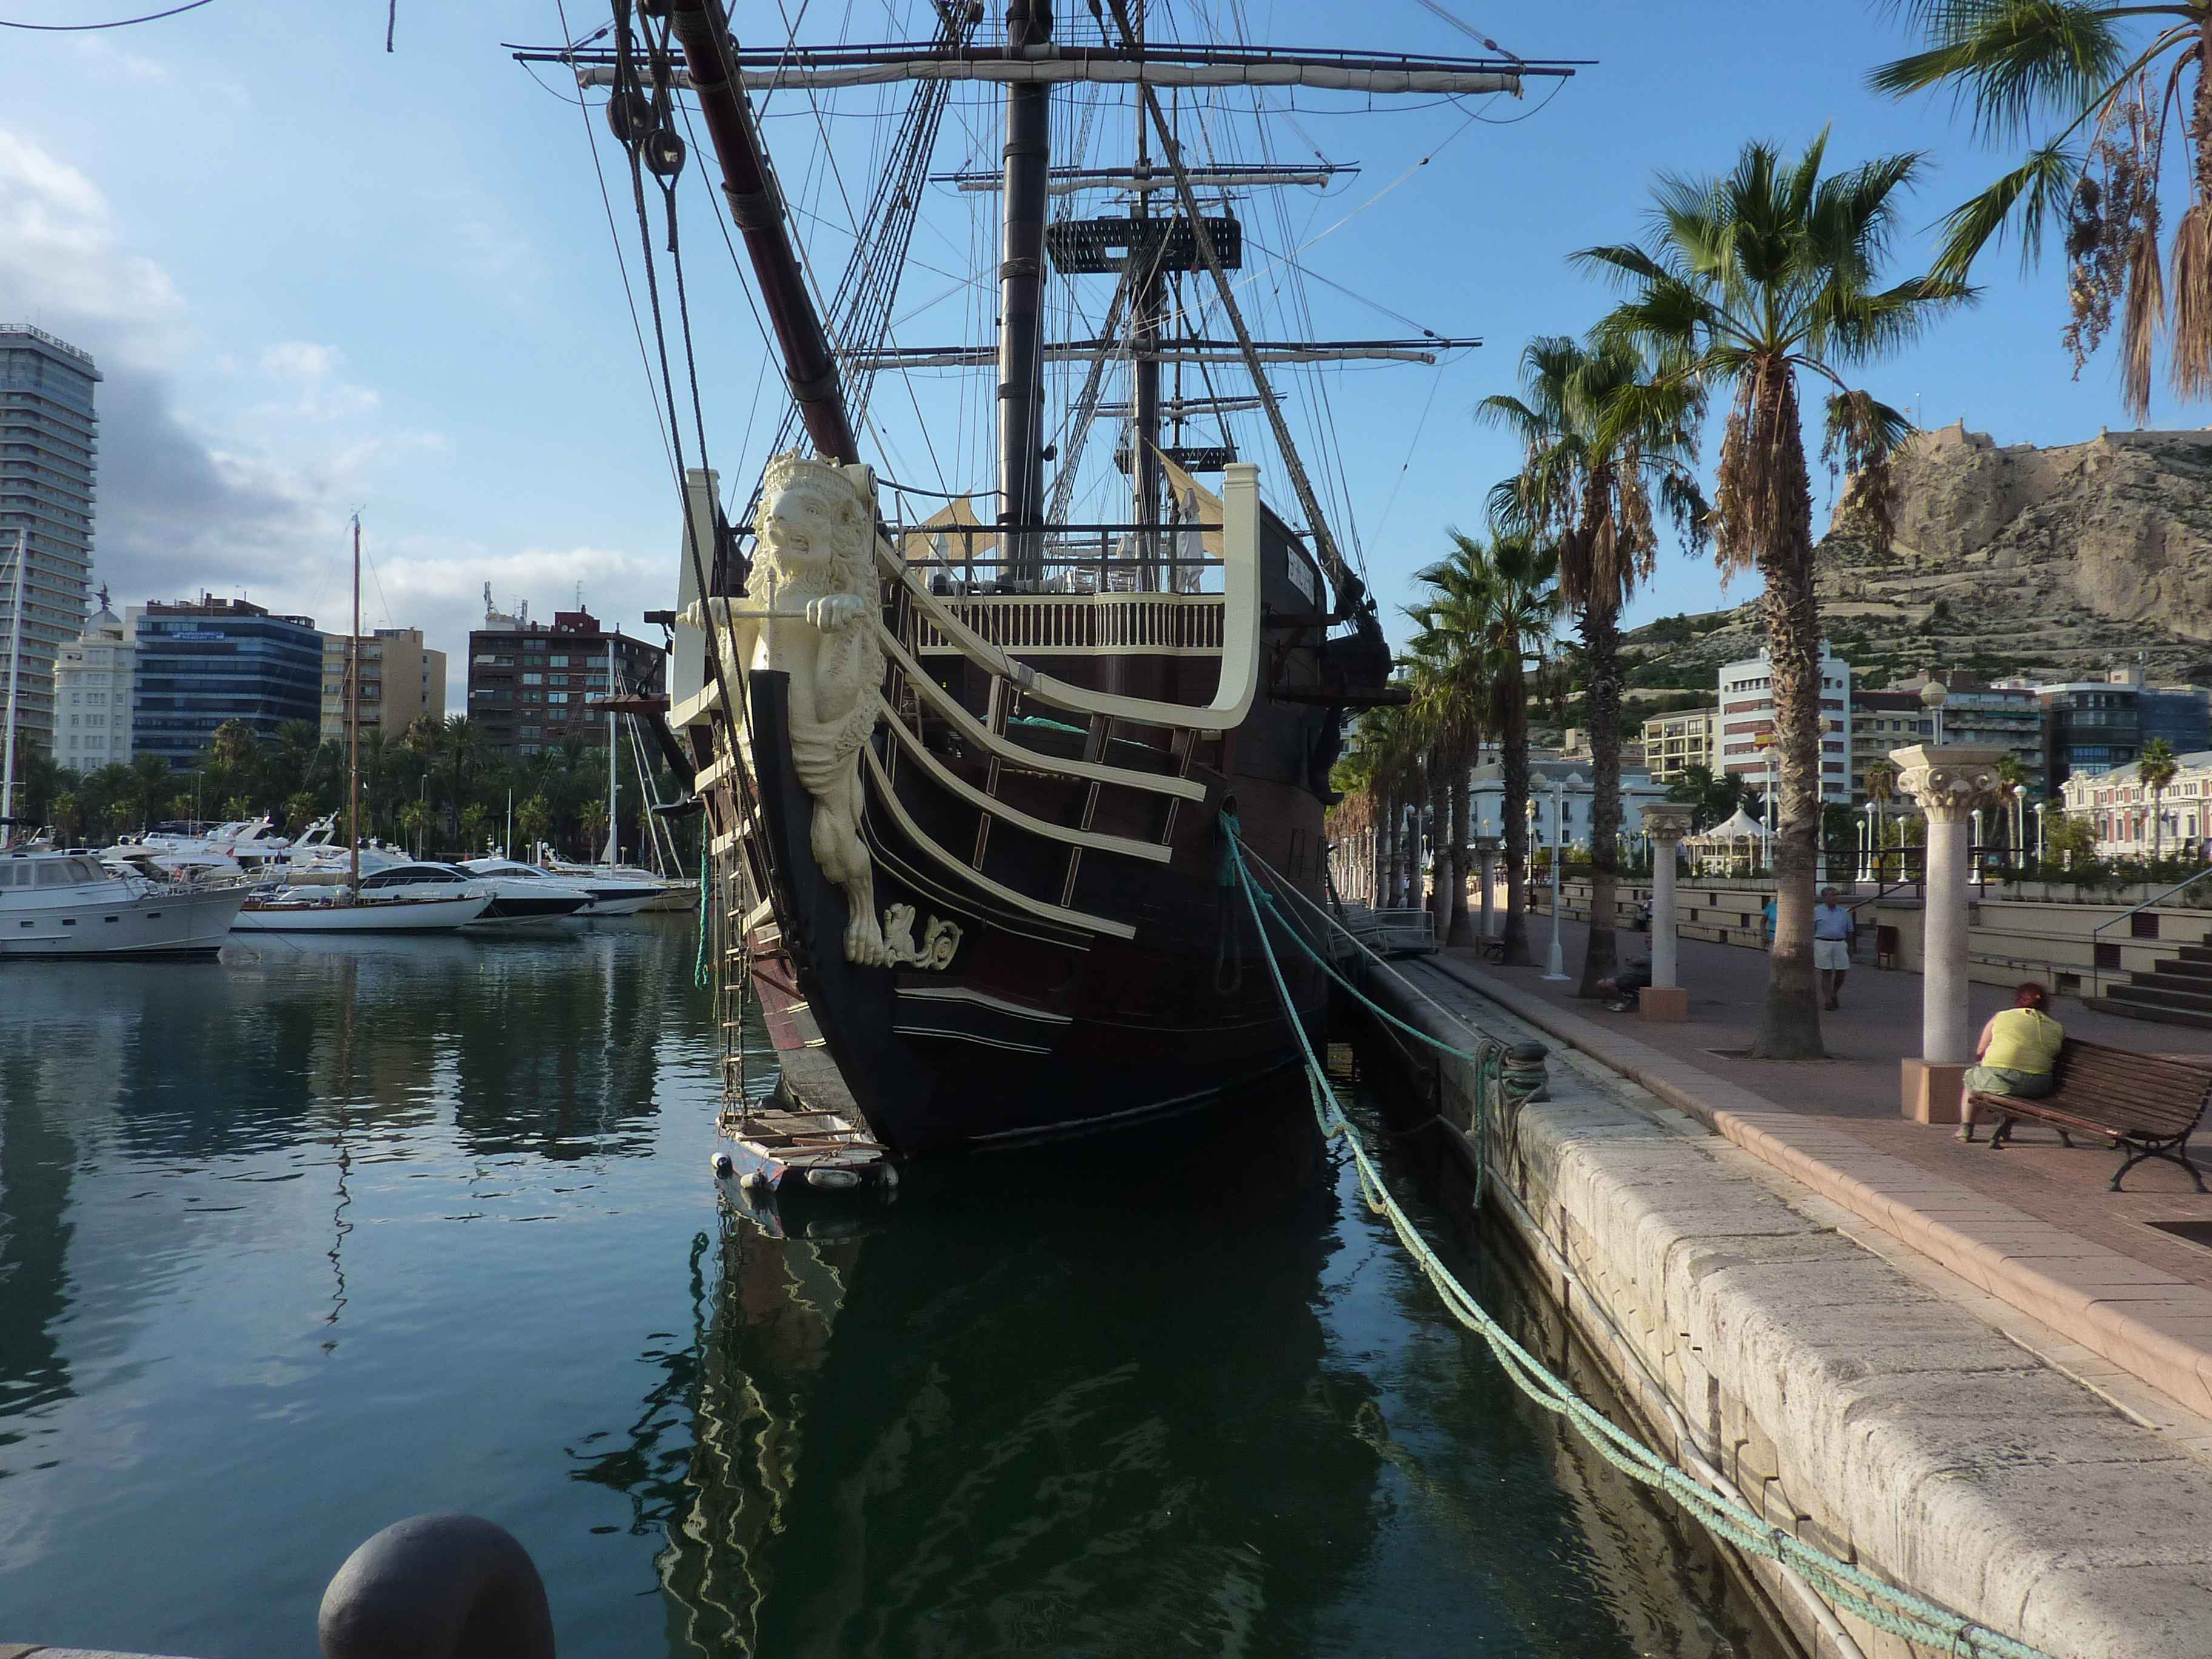 Bateau De Pirate A Alicante en Images